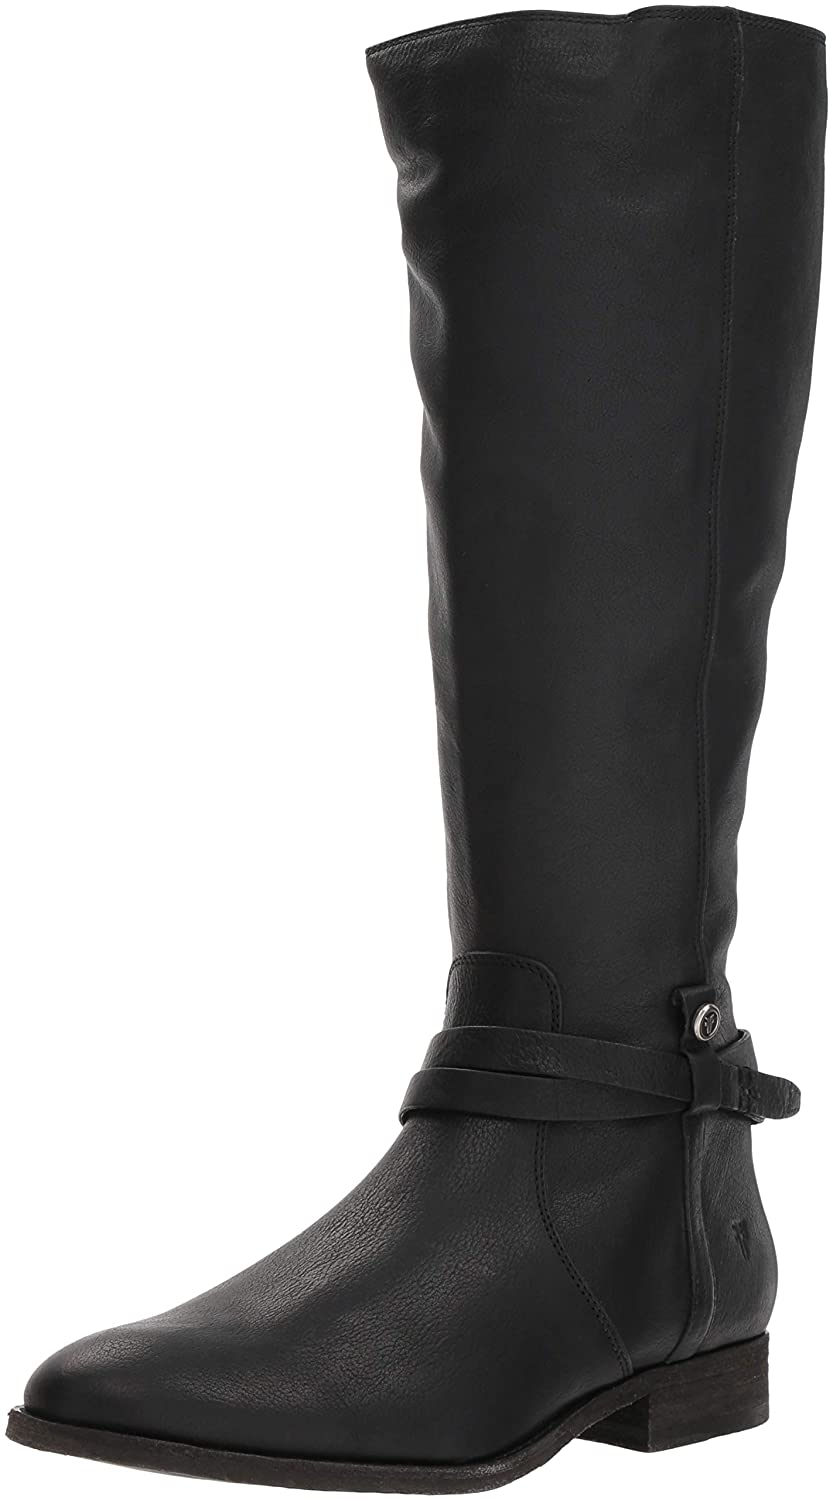 14fe2eca613b7 Amazon.com: FRYE Women's Melissa Belted Tall Knee High Boot: Shoes